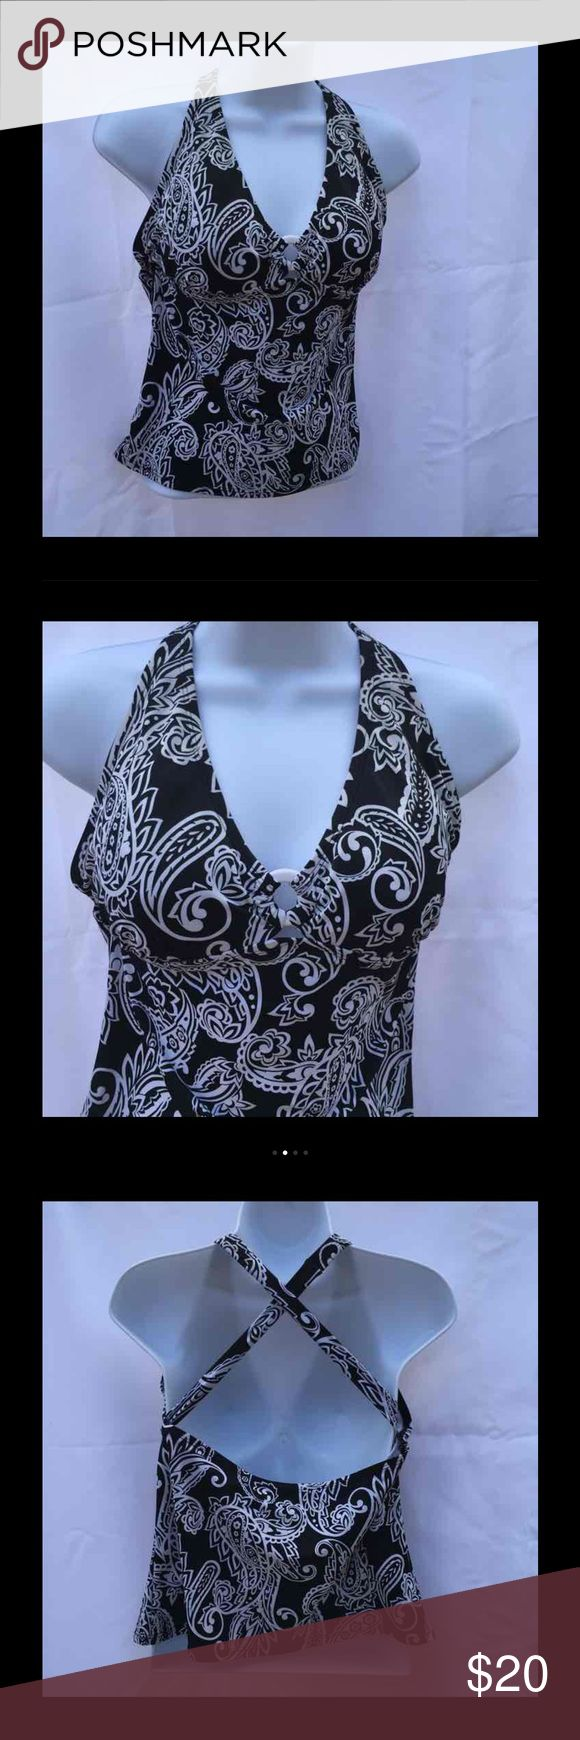 Very Versatile Jantzen Tankini Very versatile Jantzen Halter Tankini. Wear it with anything from shorts to bikini bottoms.  Padded cups  Halter style that crisscross in the back Ladies Medium  Black & White paisley print   TANKINI ONLY   EUC Non smoking environment  No stains, snags or damage   EUC Non smoking environment  No stains, snags or damage  Thanks , Molly M 638 / W .50 Jantzen Swim Bikinis